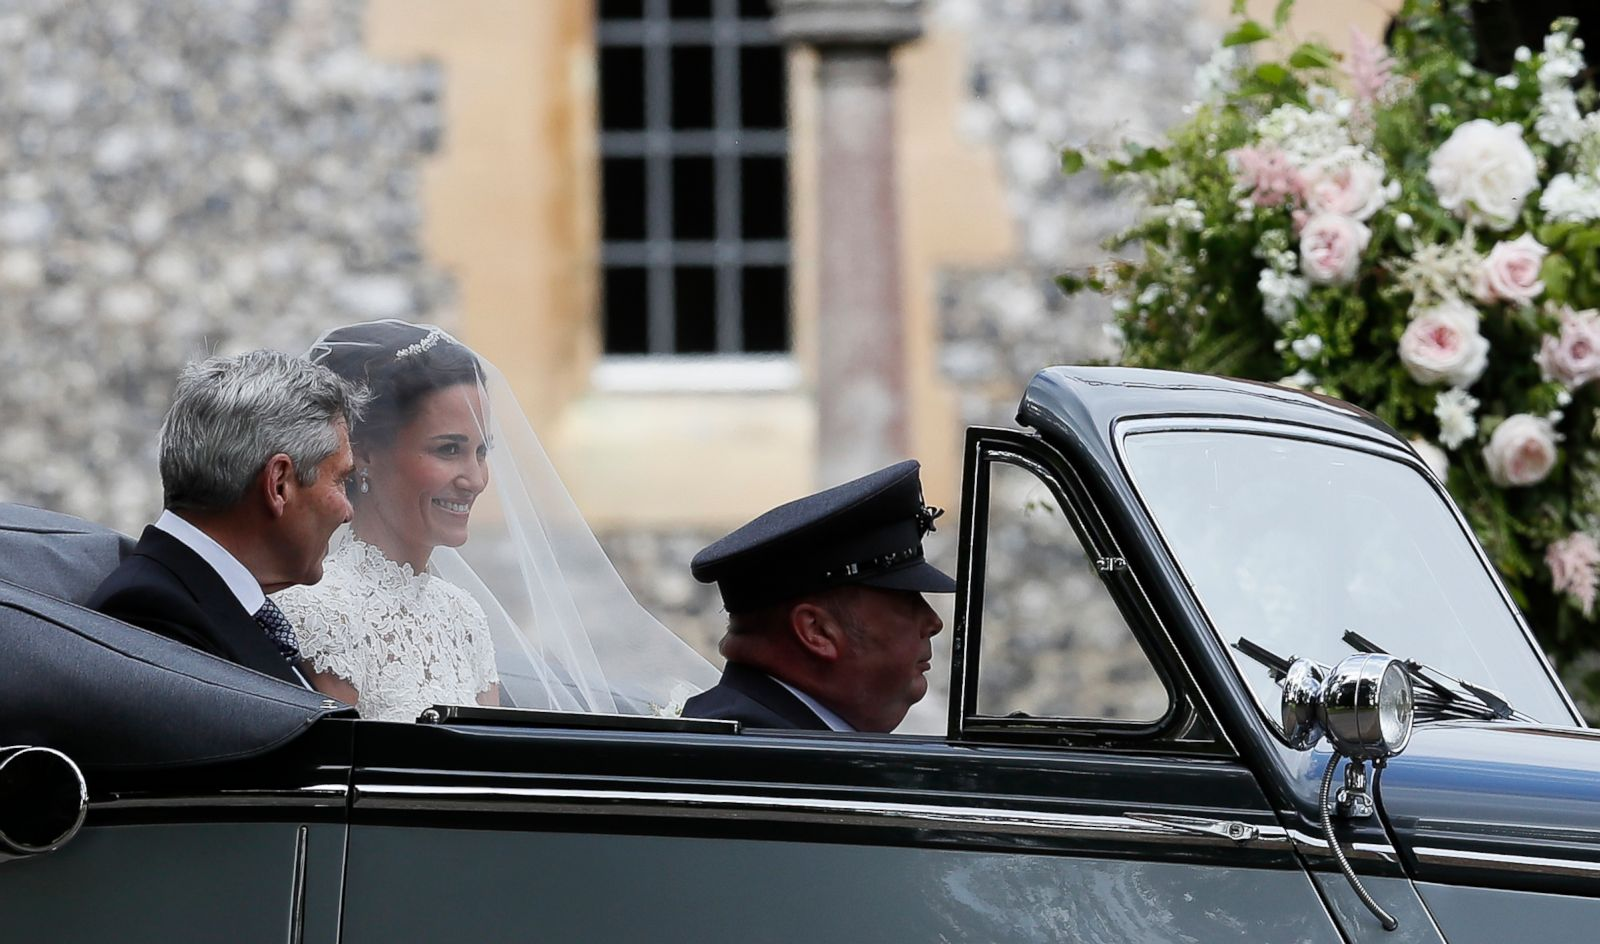 ap-pippa-middleton-wedding-21-jc-170520_22x13_1600.jpg (1600×944)